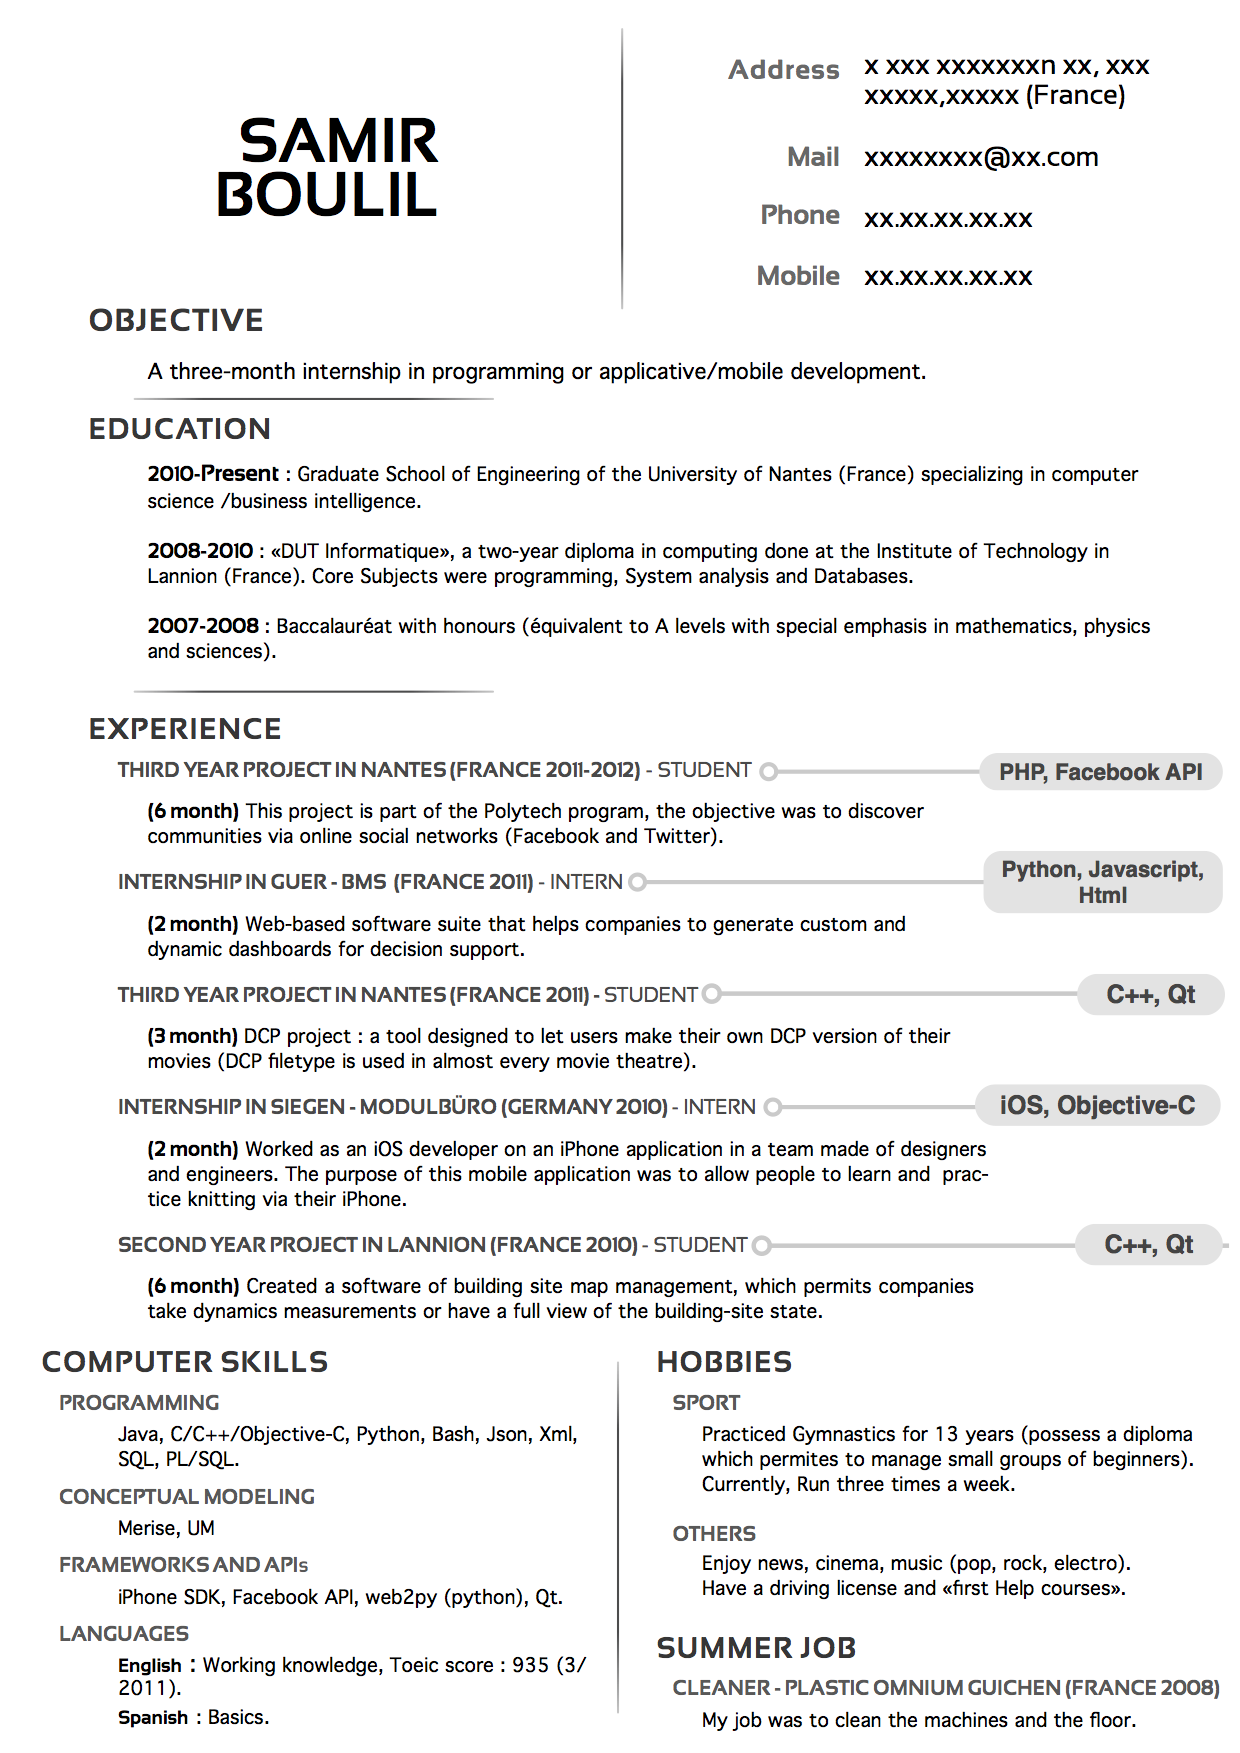 buy essay papers here - etranger resume